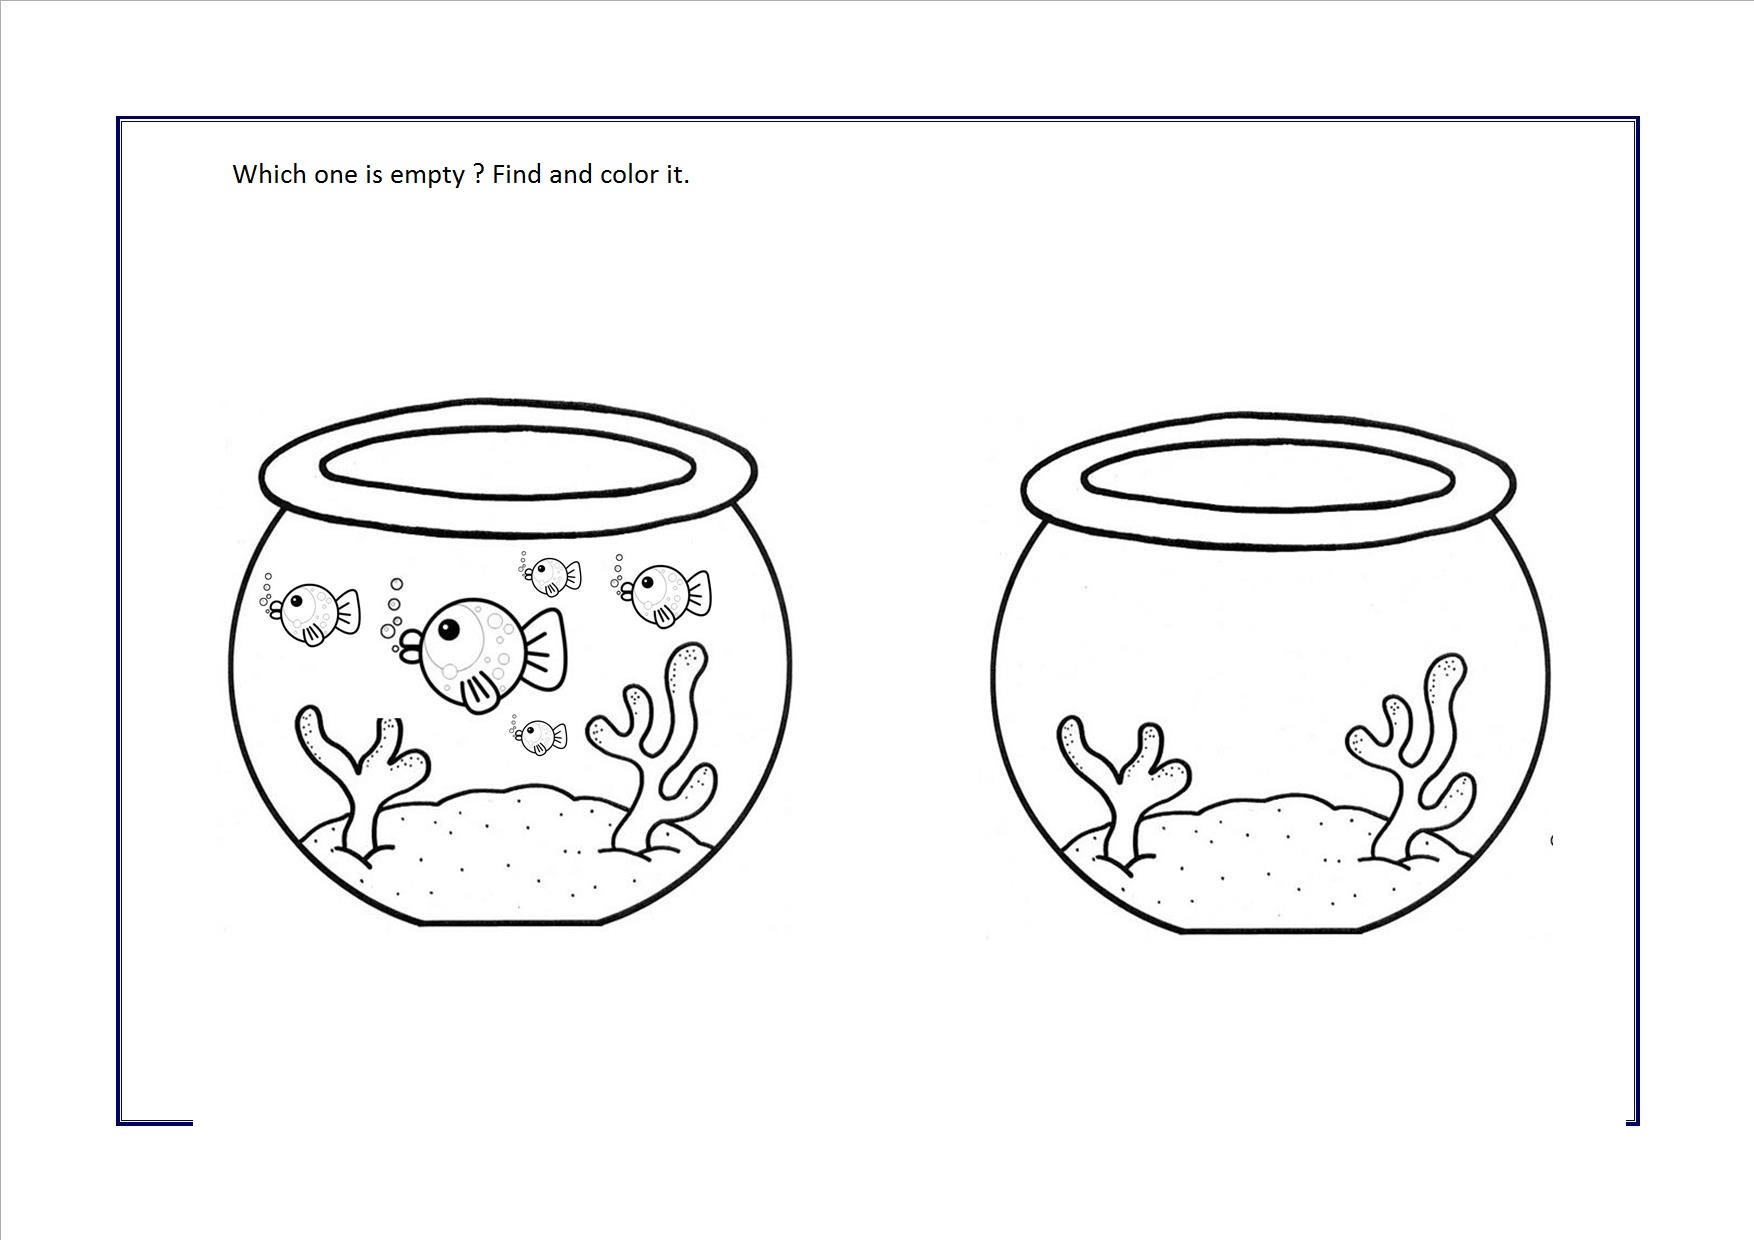 Worksheet Full Empty full or empty worksheets for preschool crafts and easy 1